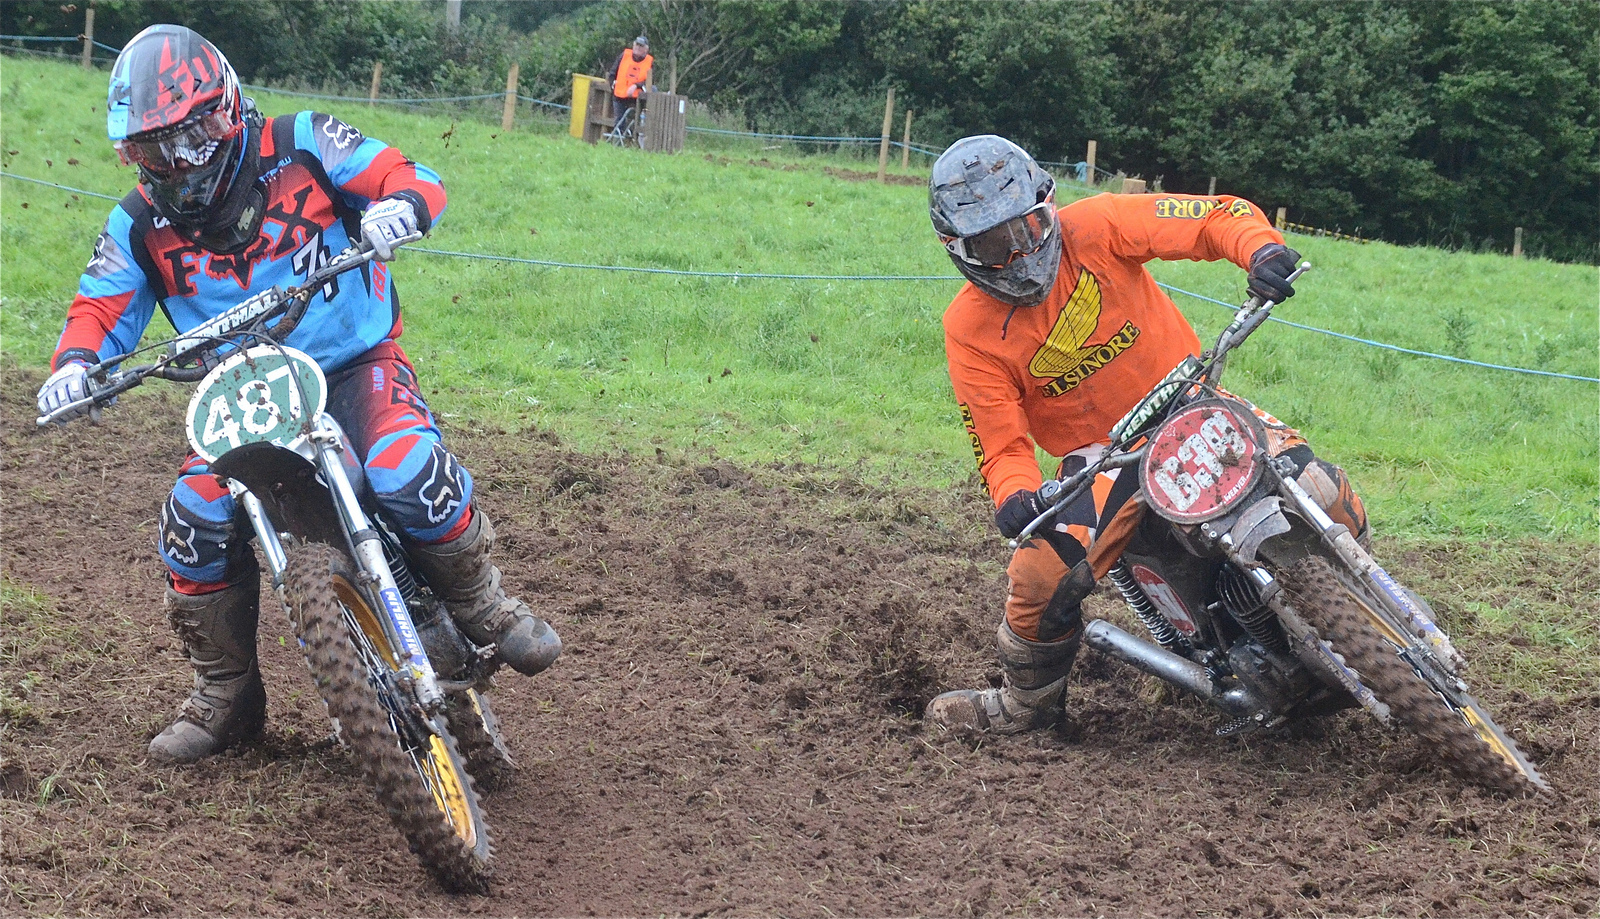 Llanthony Classic Scramble Photos September 2015 classicdirtbikerider.com..28